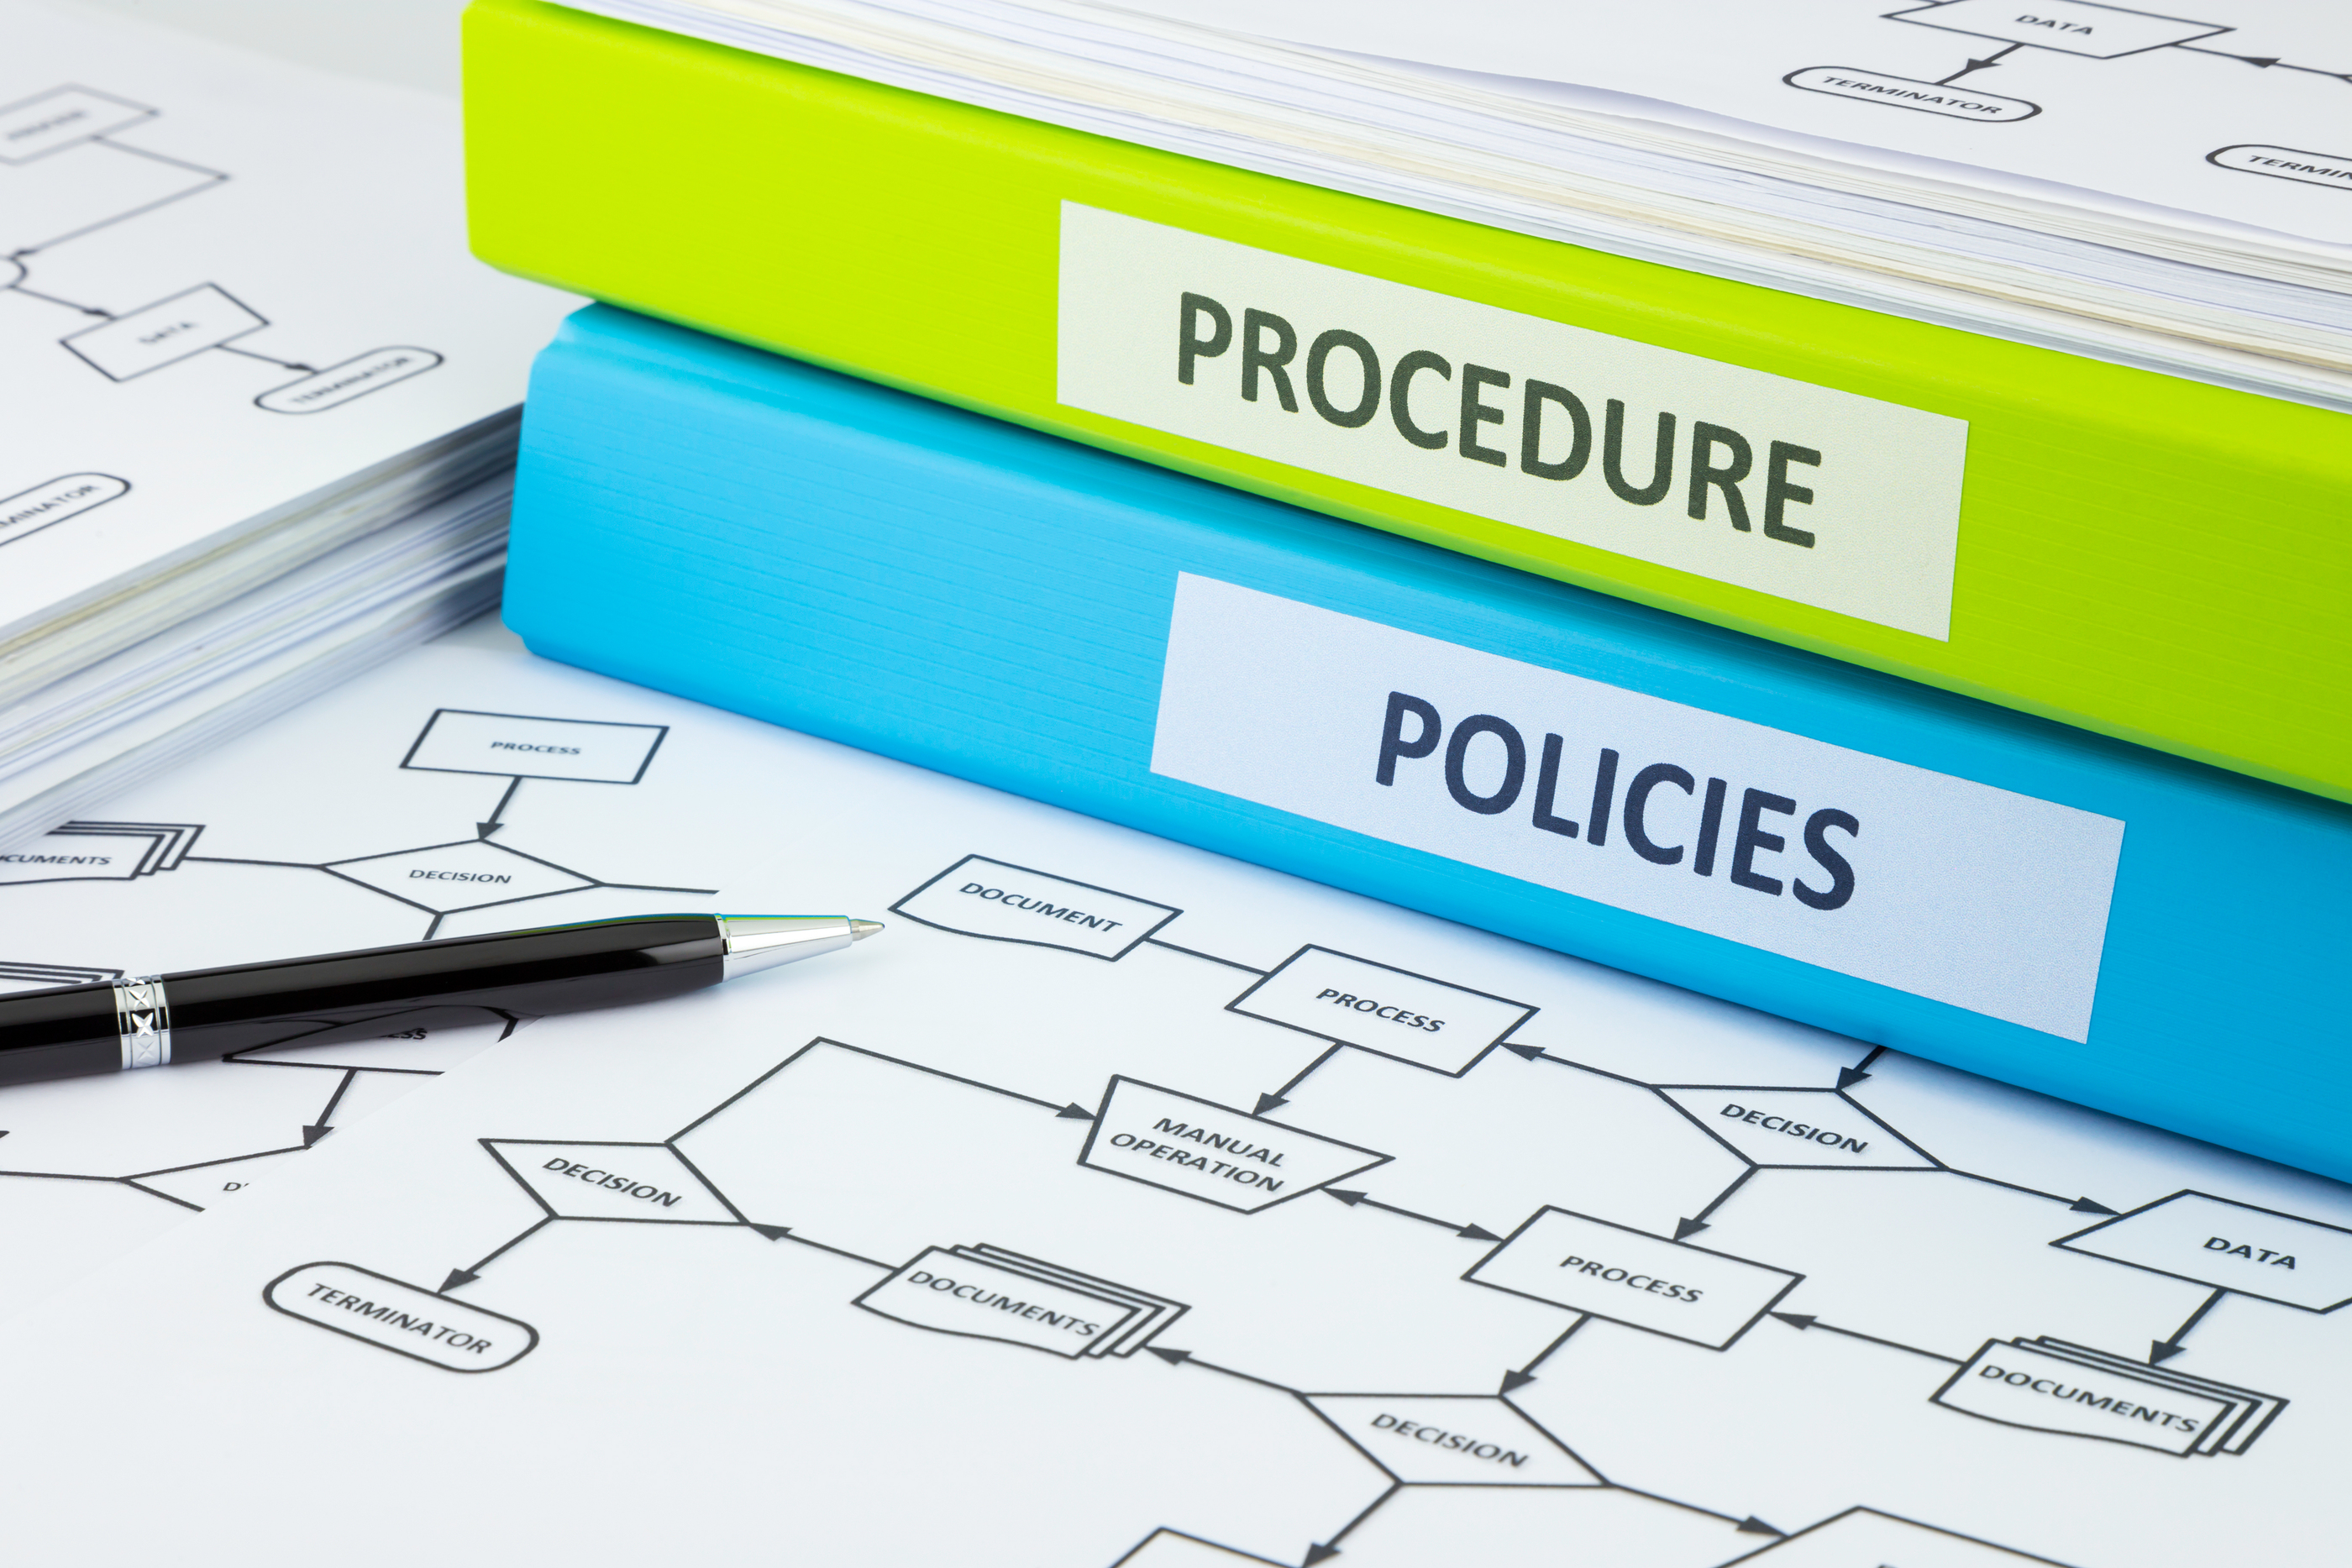 policies and procedure documents for business - Business Documents